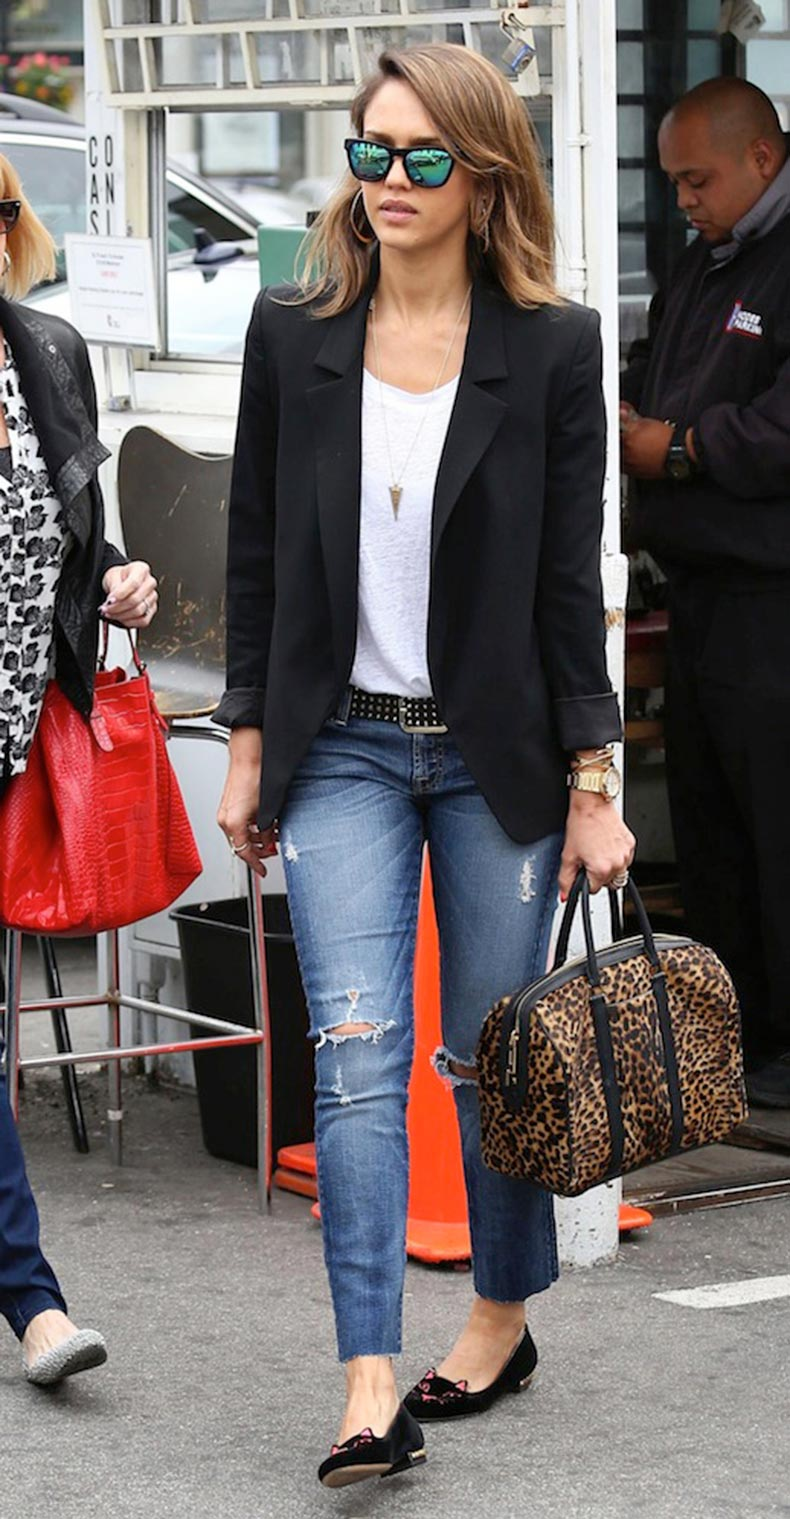 Le-Fashion-Blog-Jessica-Alba-Westward-Leaning-Mirror-Sunglasses-ALC-Leopard-Satchel-Bag-Charlotte-Olympia-Kitty-Flats-Celebrity-Style-20-1